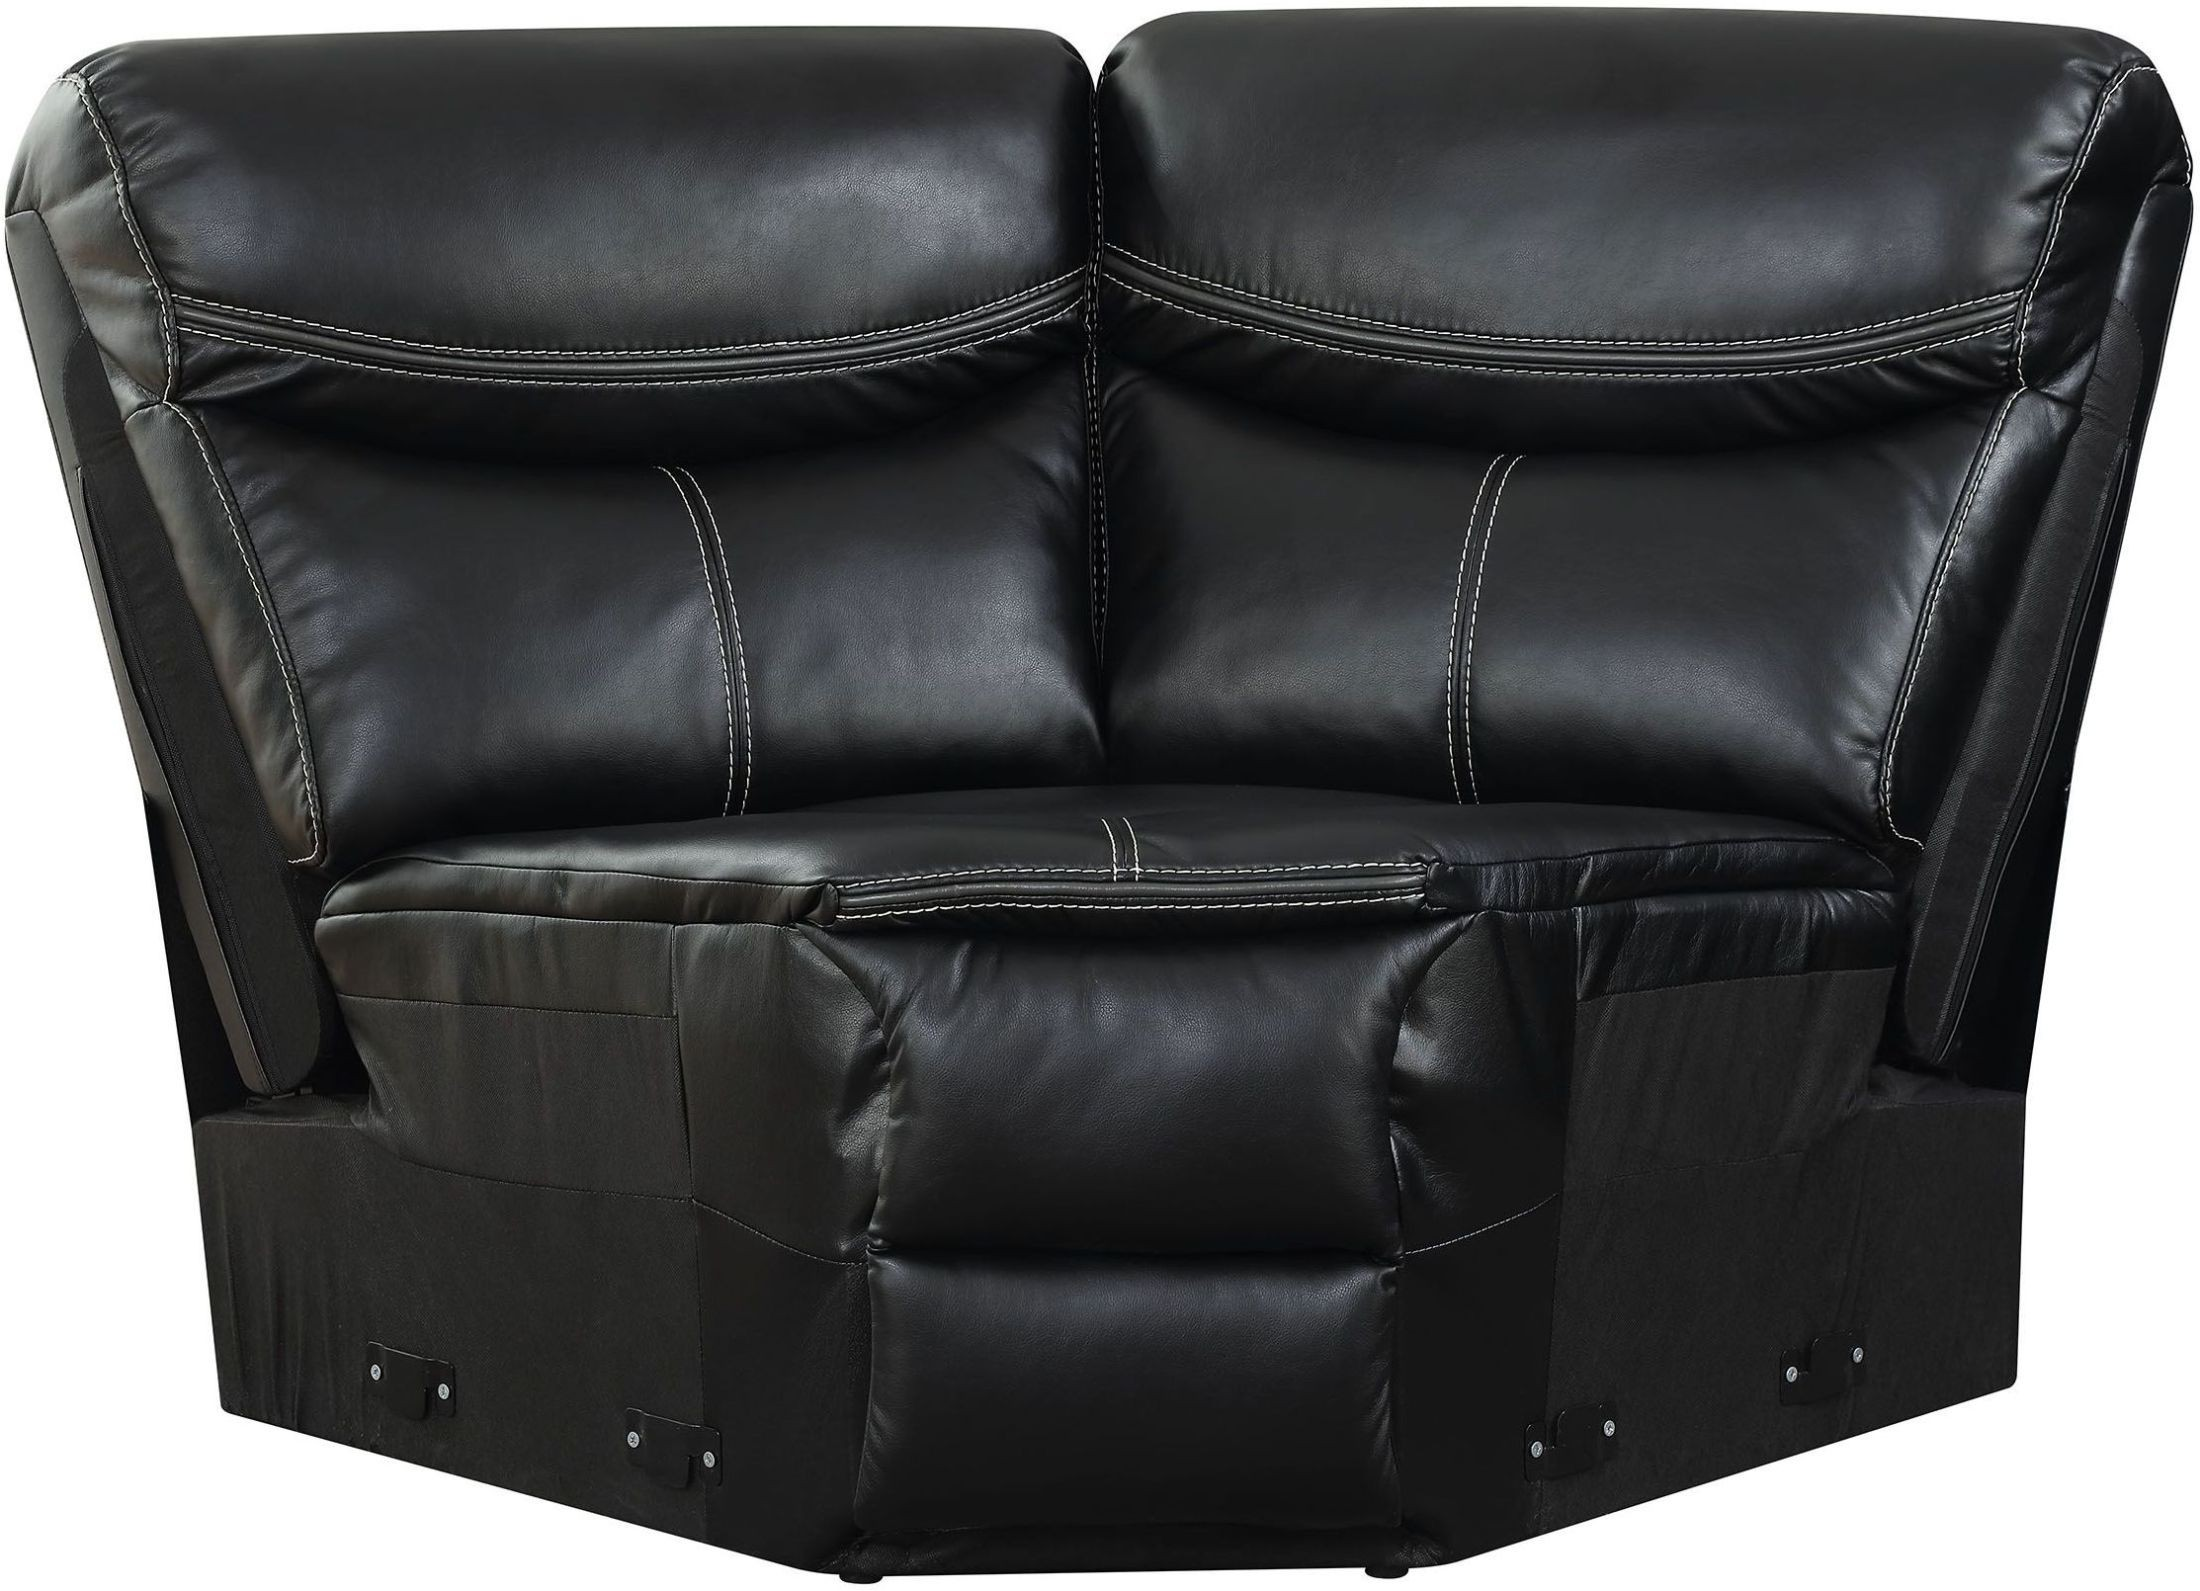 black reclining sofa with console how to replace cushions foam gatria ii sectional from